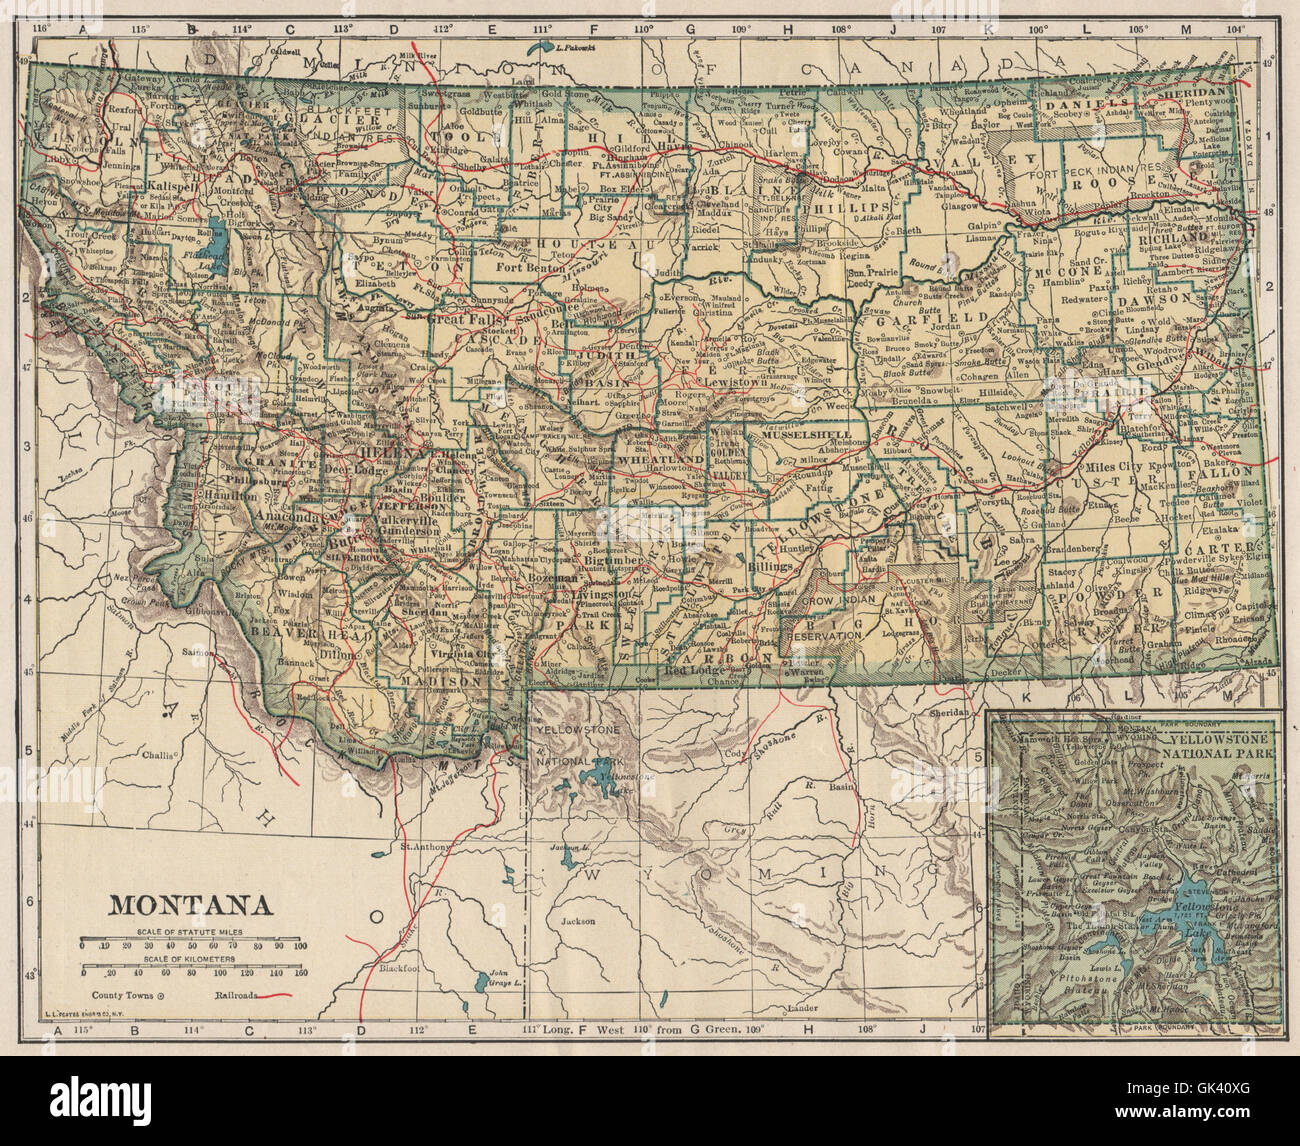 Montana Inset Yellowstone National Park State Map With Railroads